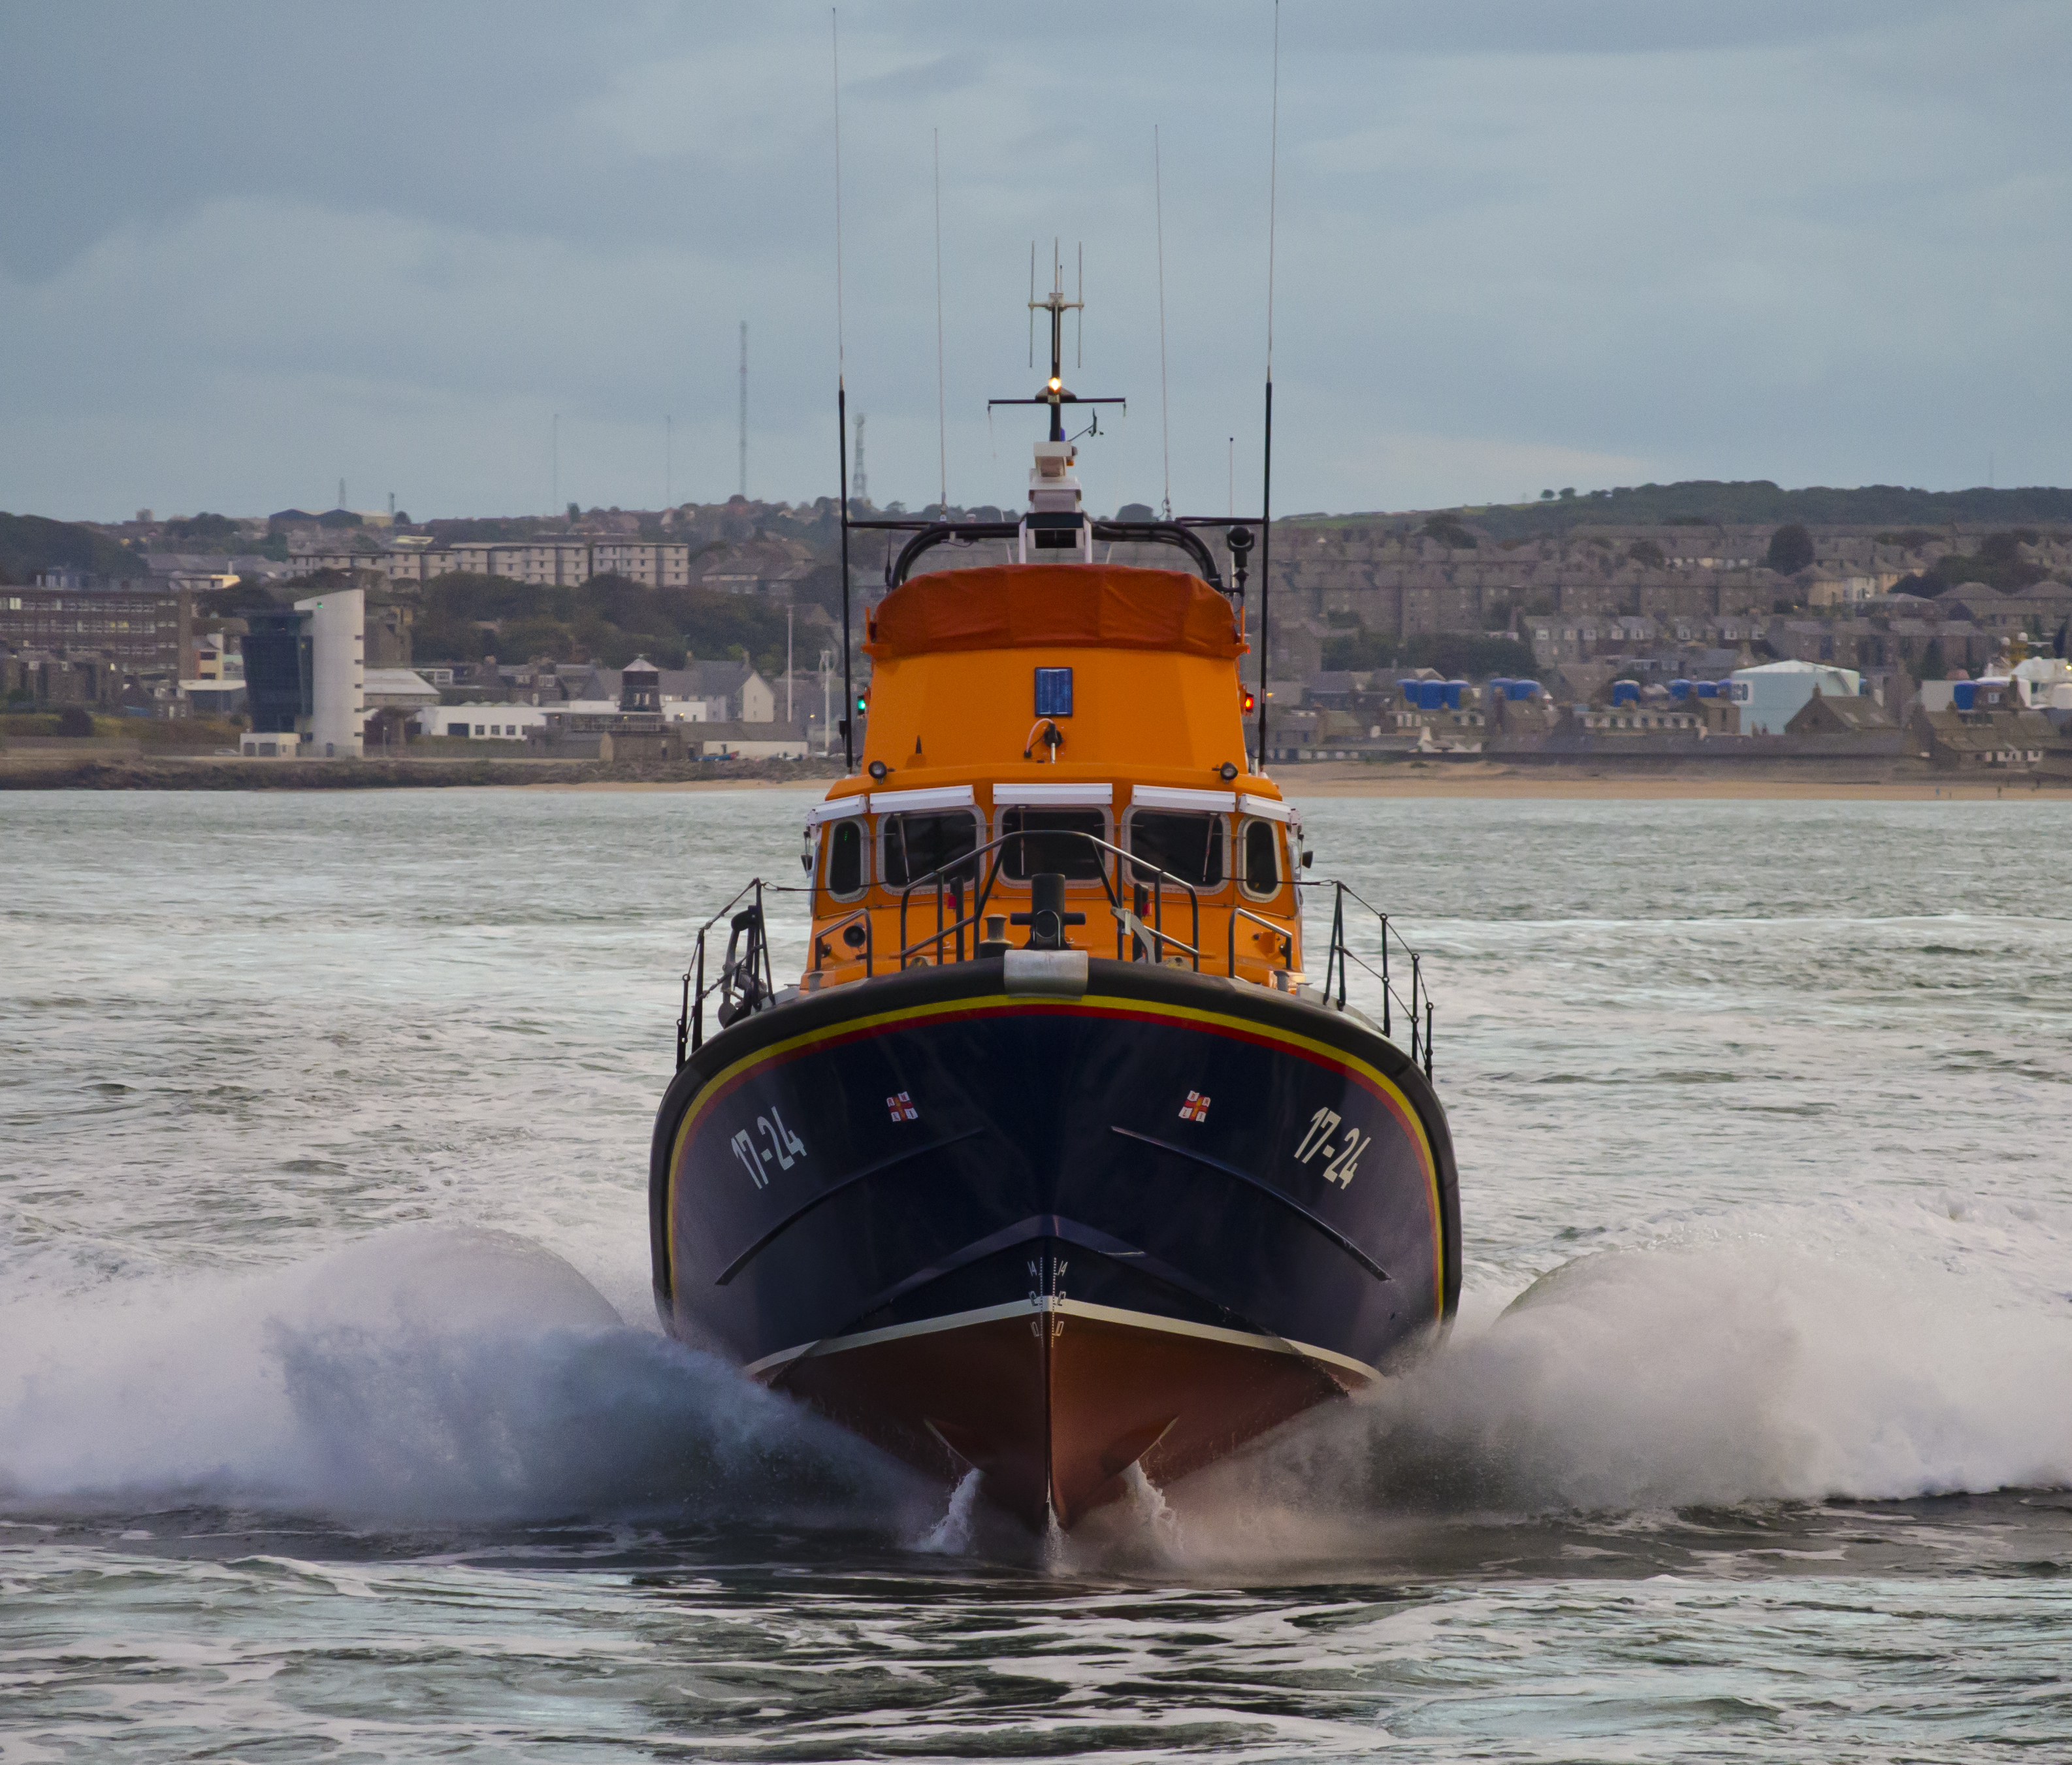 Aberdeen's Severn class all weather lifeboat 'Bon Accord'